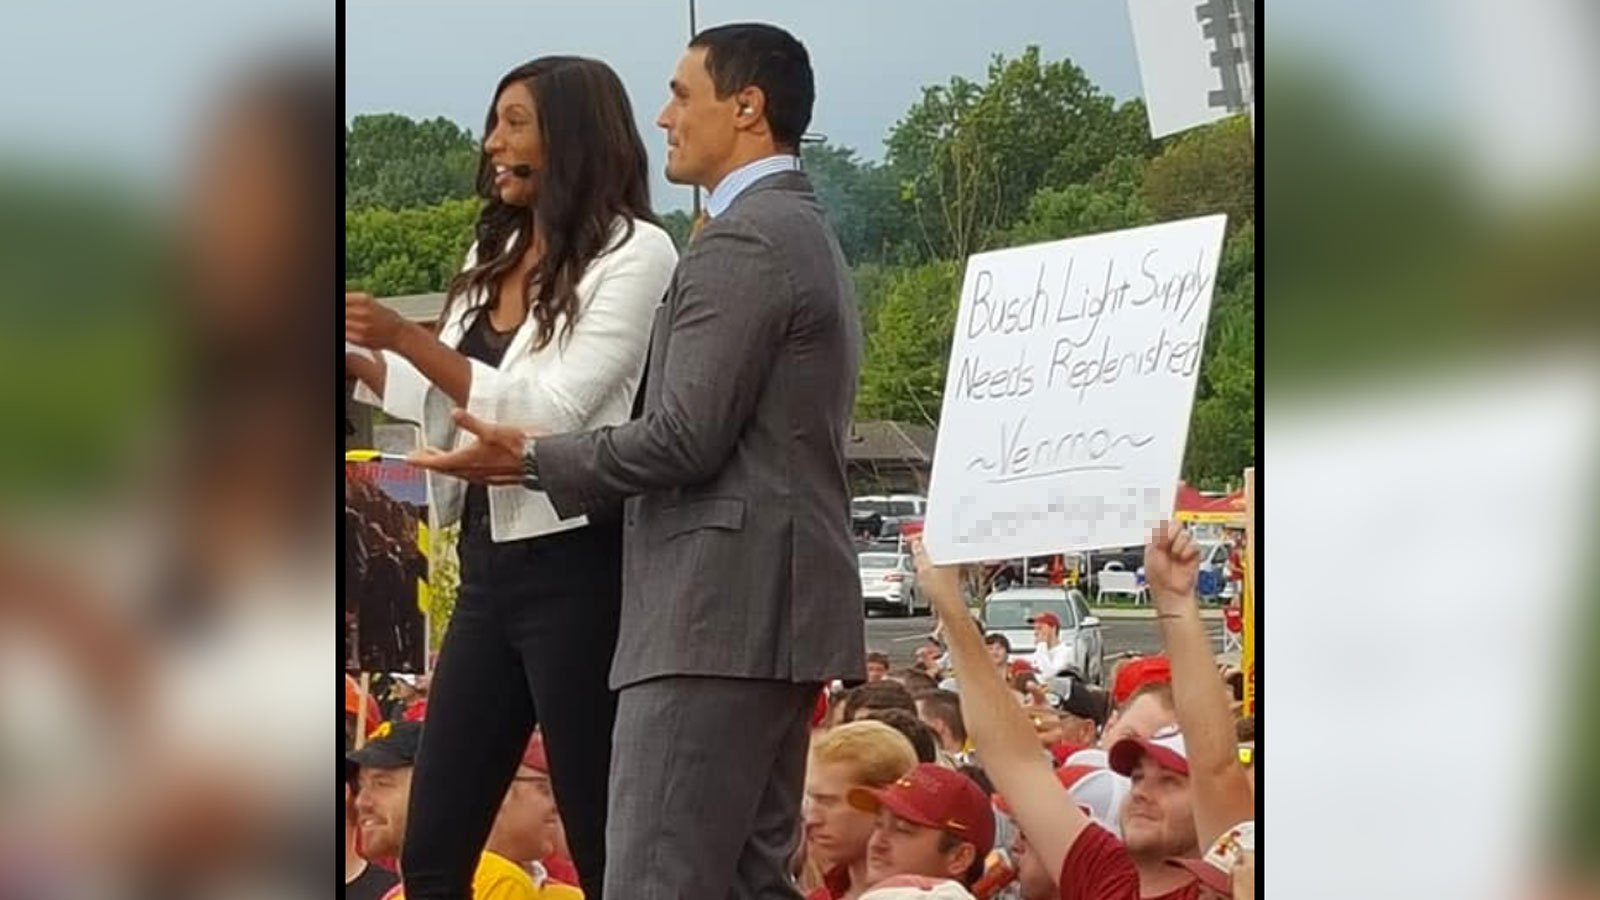 A fan held a sign on 'College GameDay' asking people to Venmo him money for beer. Now he's donating it all to a children's hospital